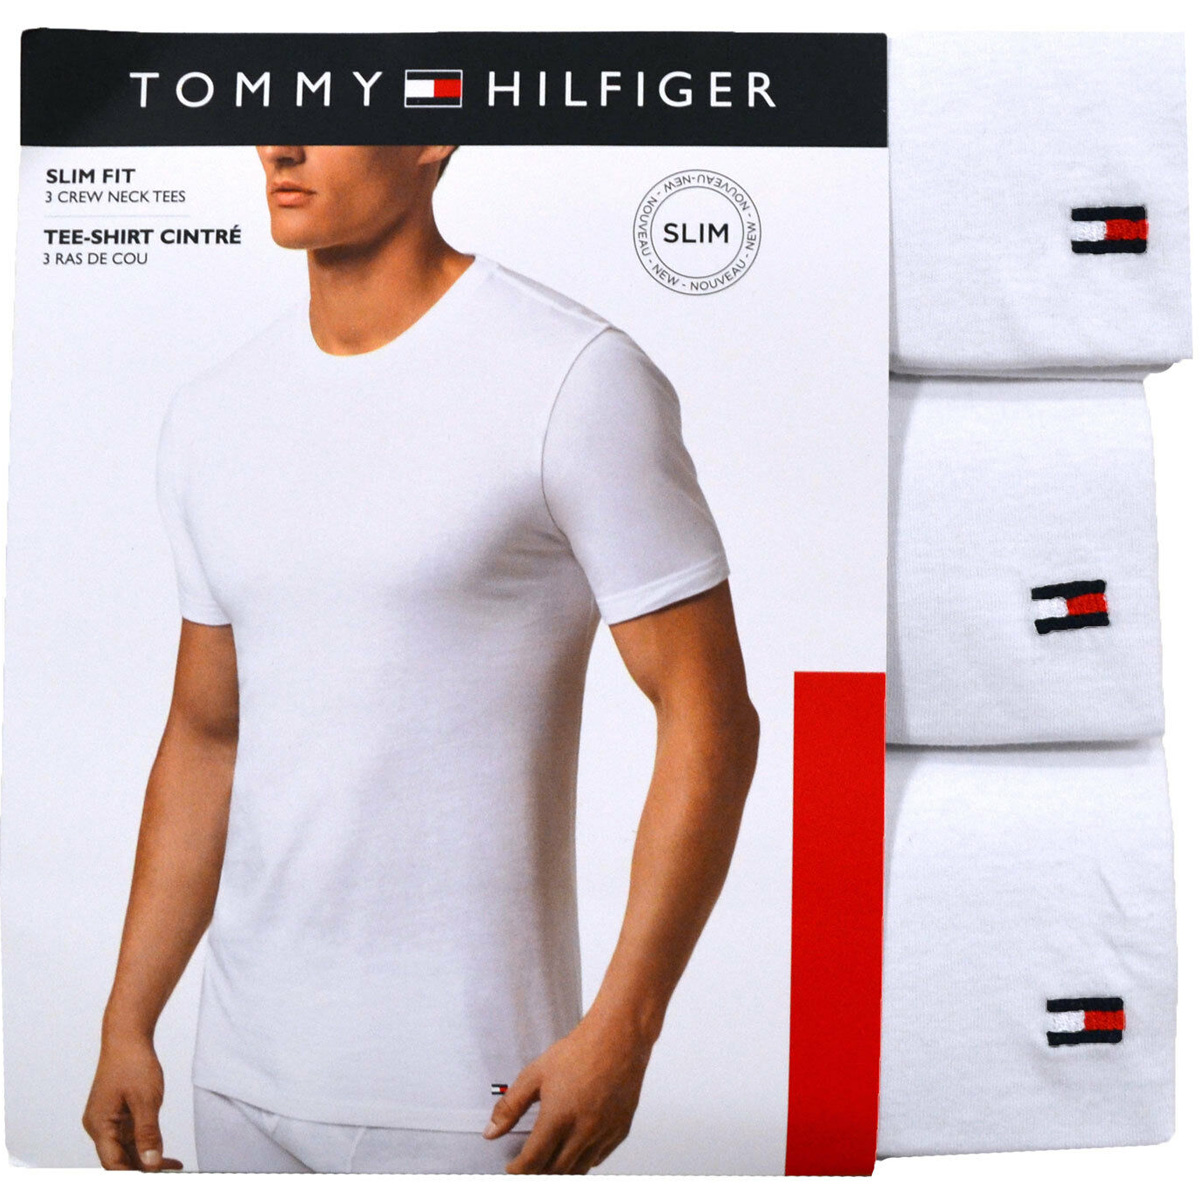 bo-3-ao-thun-tommy-hilfiger-slim-fit-10